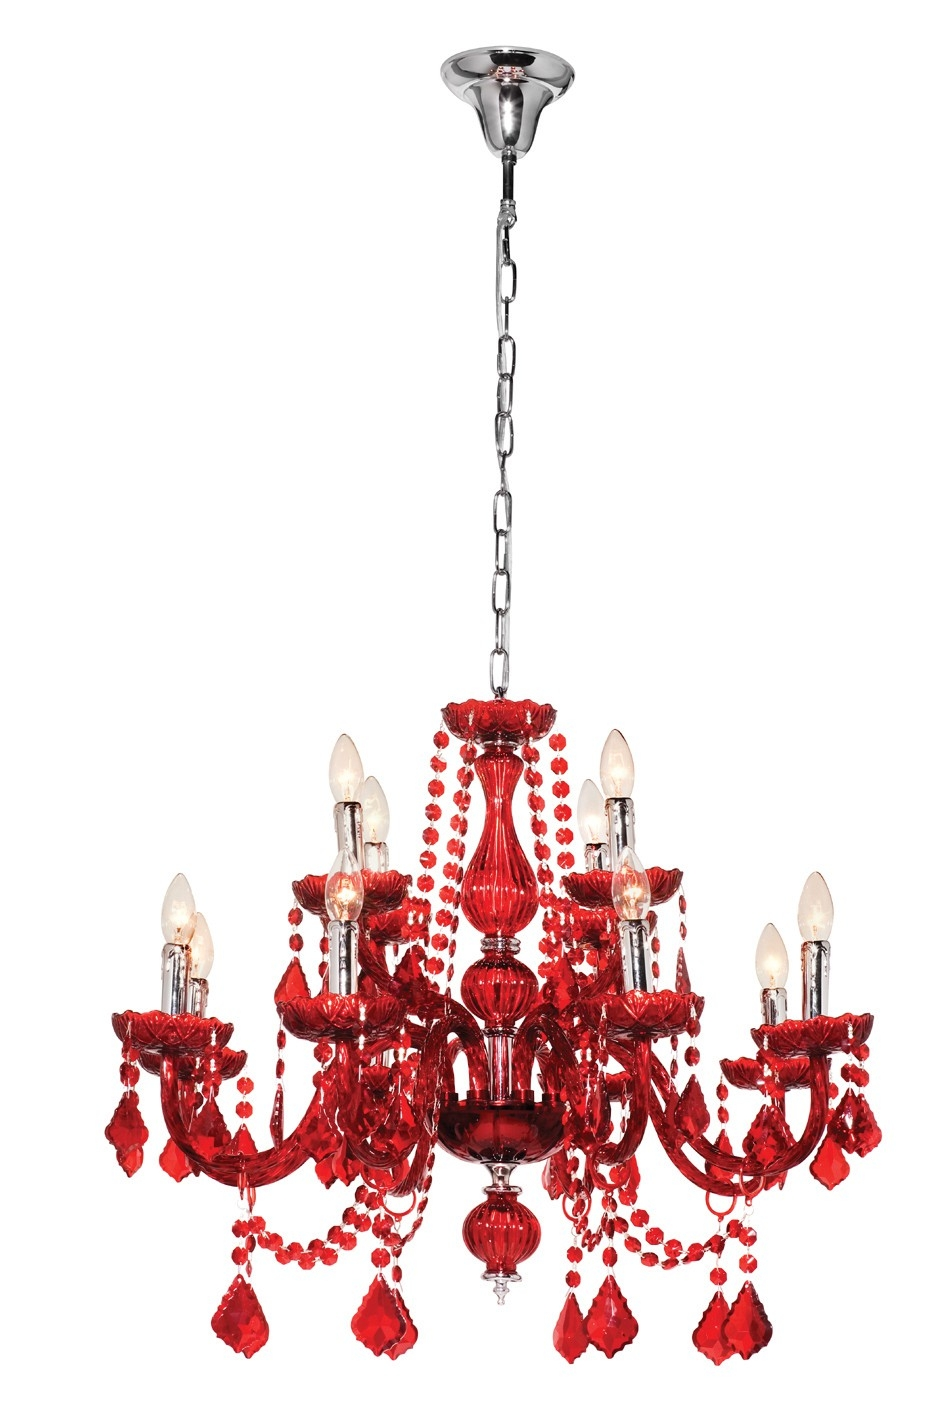 Fabulous Red Chandelier On Modern Home Interior Design Ideas With Inside Modern Red Chandelier (Image 6 of 15)